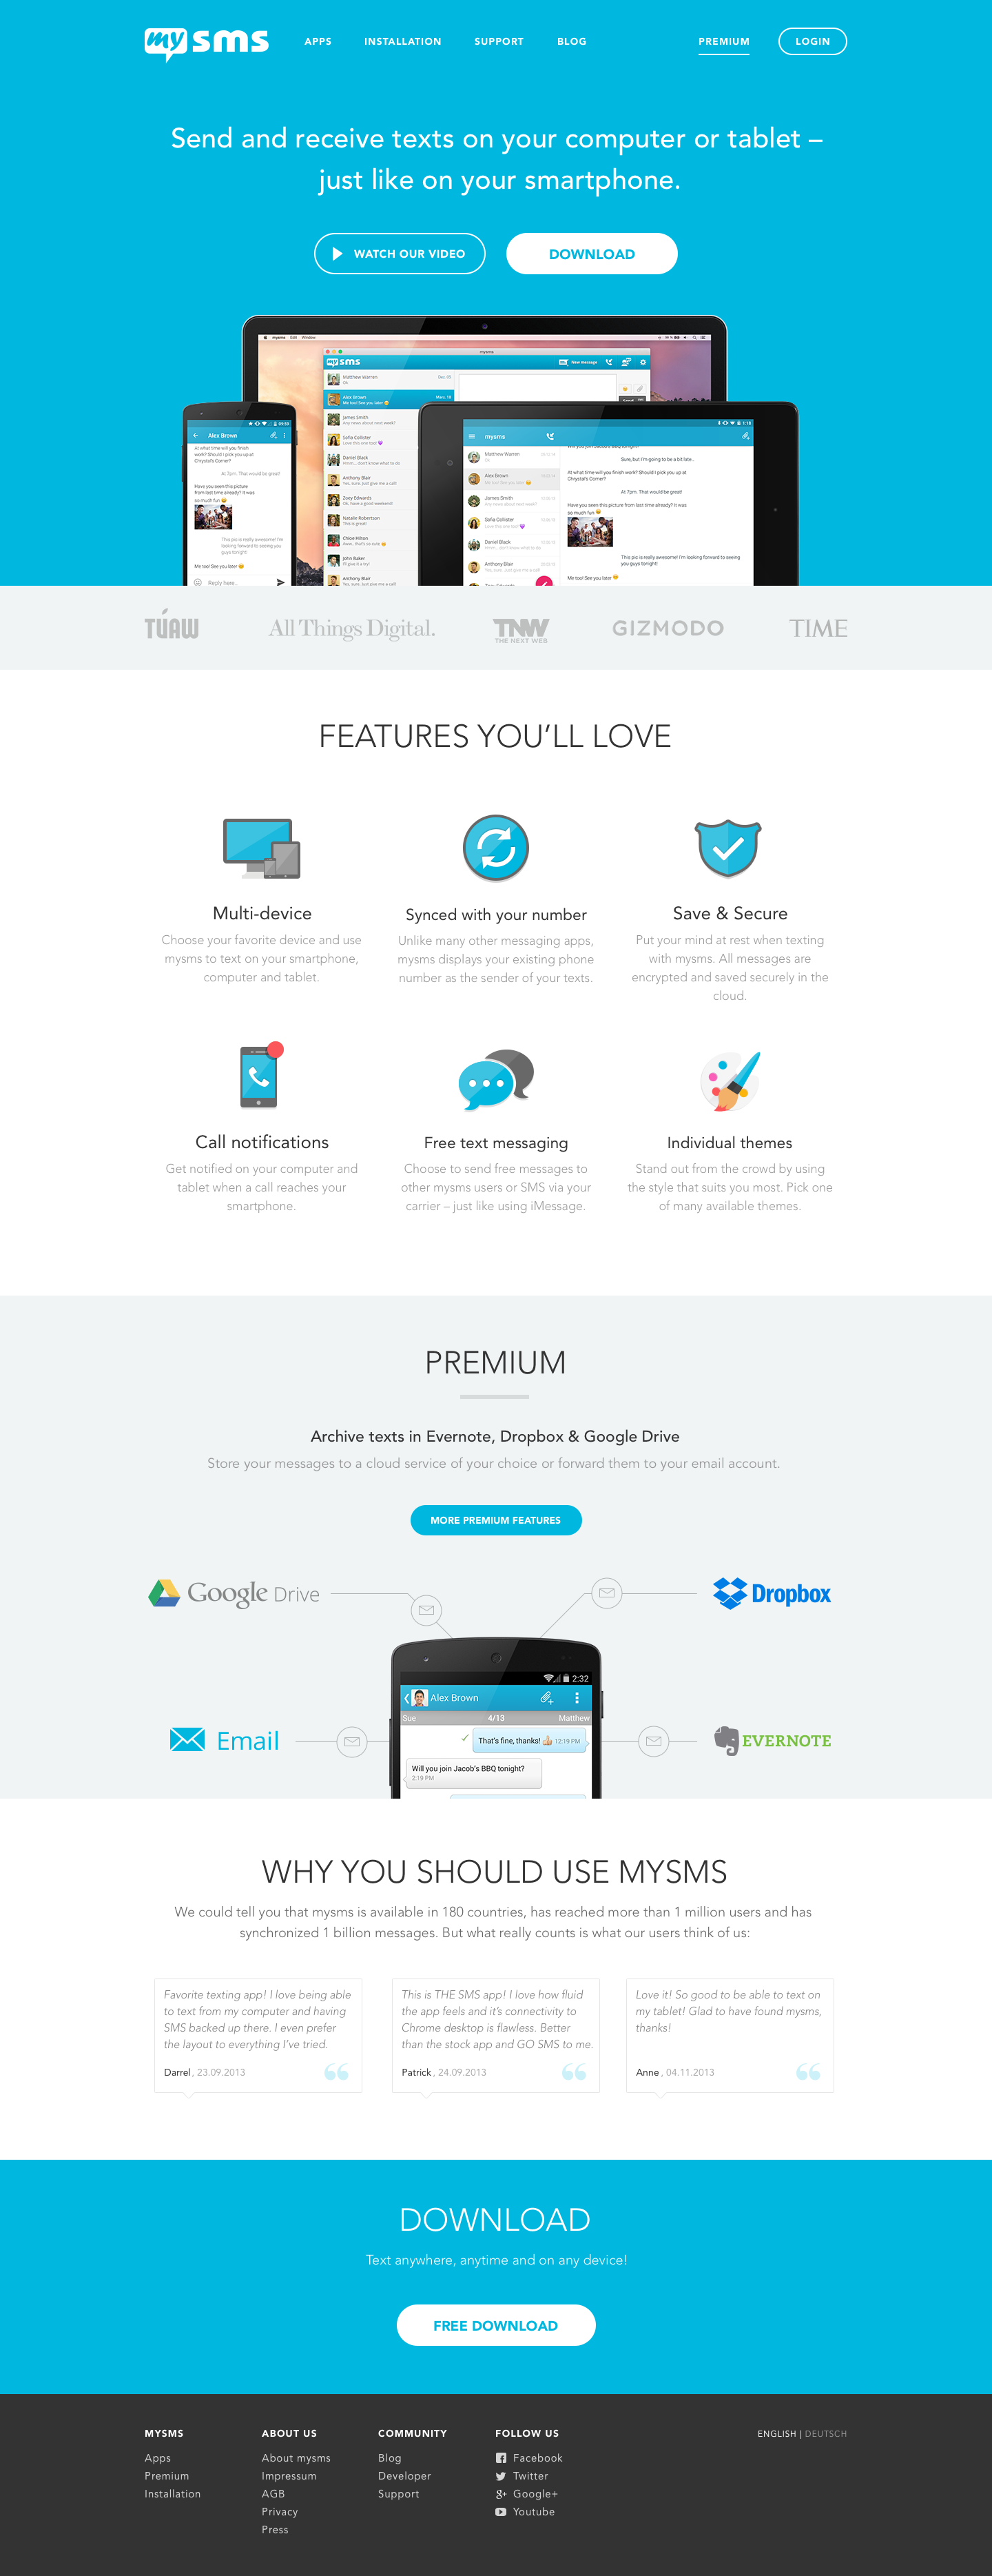 mysms-website-2014